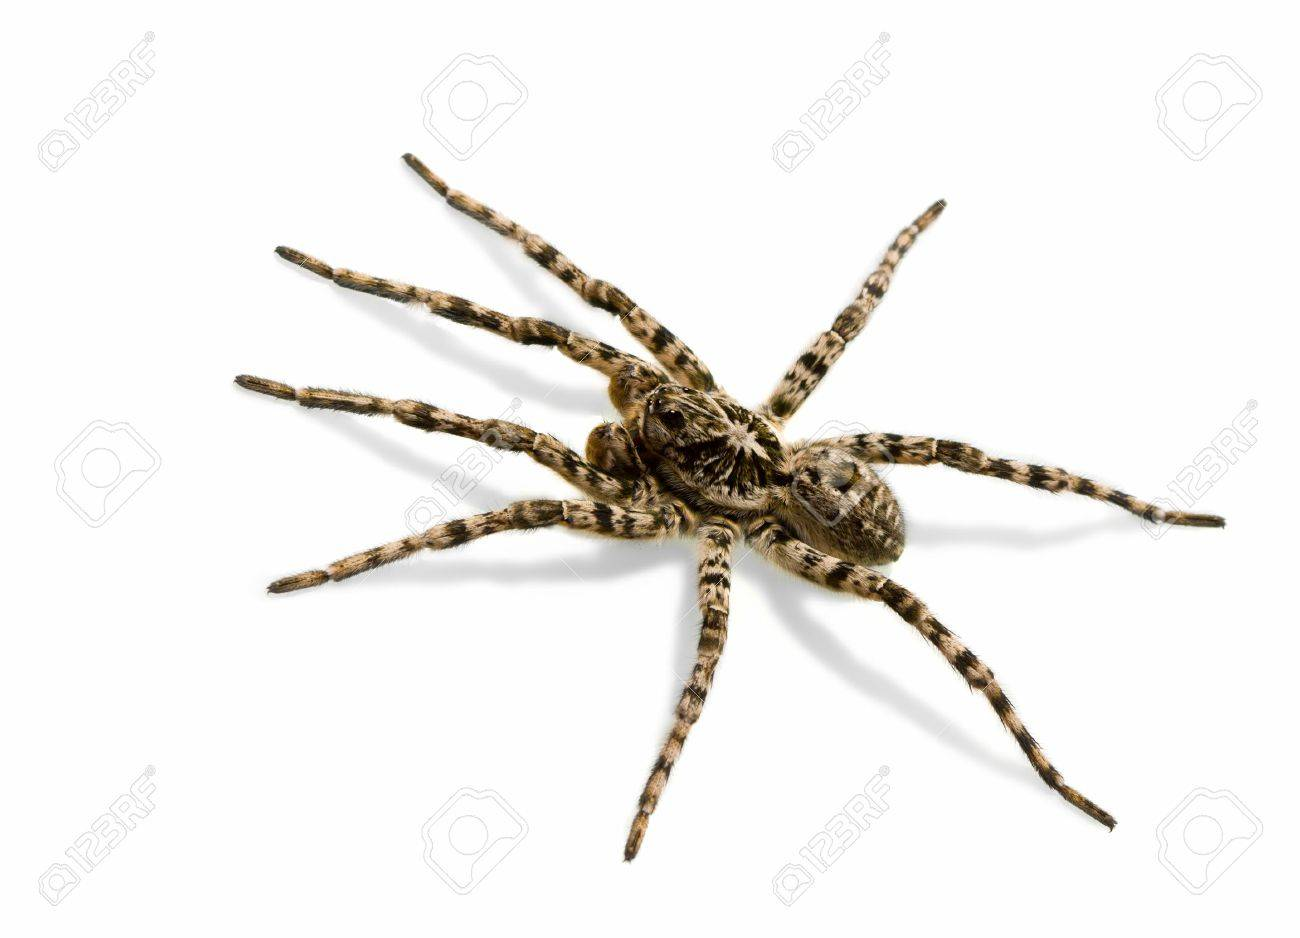 Tarantula spider isolated over white background with shadow Stock Photo - 6872053